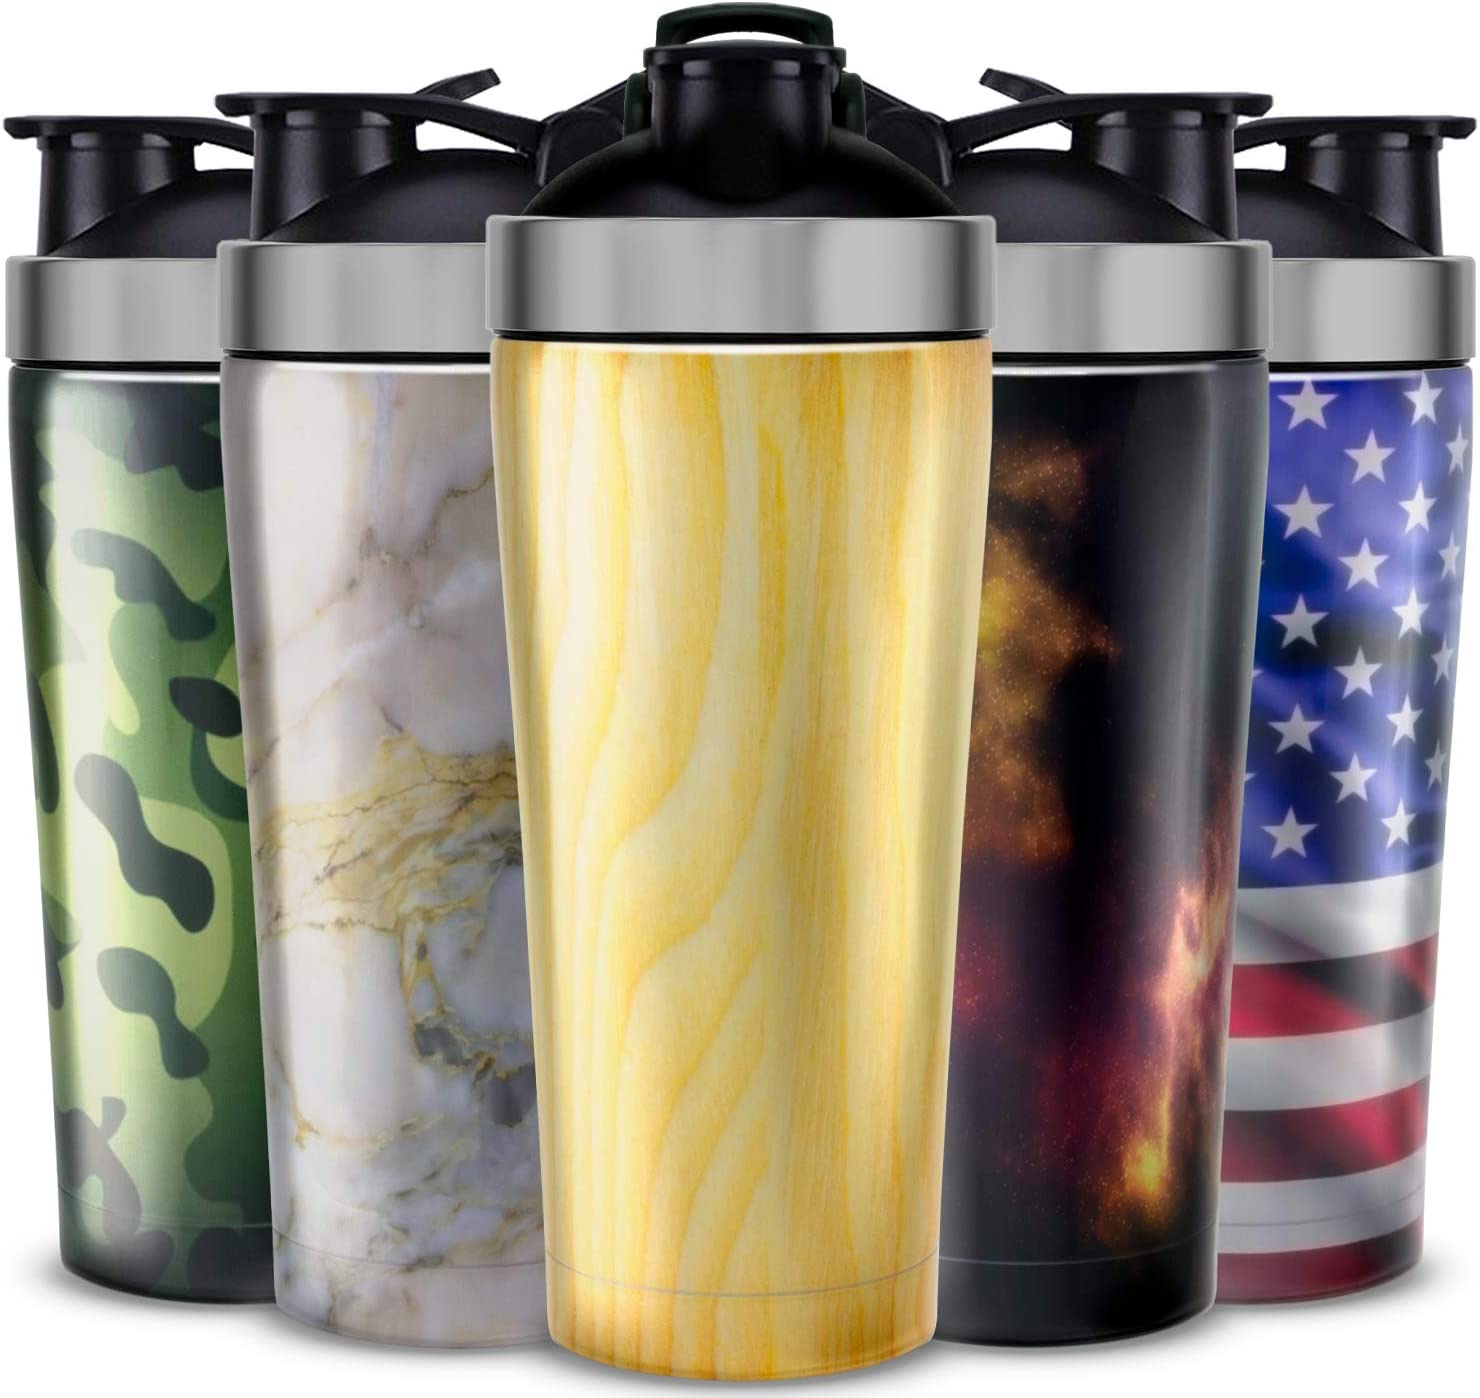 Stainless Steel Protein Shaker Bottle BPA Free - Vacuum Insulated Gym Shaker Cup for Meal Replacement Shakes - Leak Proof Metal Shaker Bottles for Protein Mixes - Steel Shaker Cups for Protein Shakes